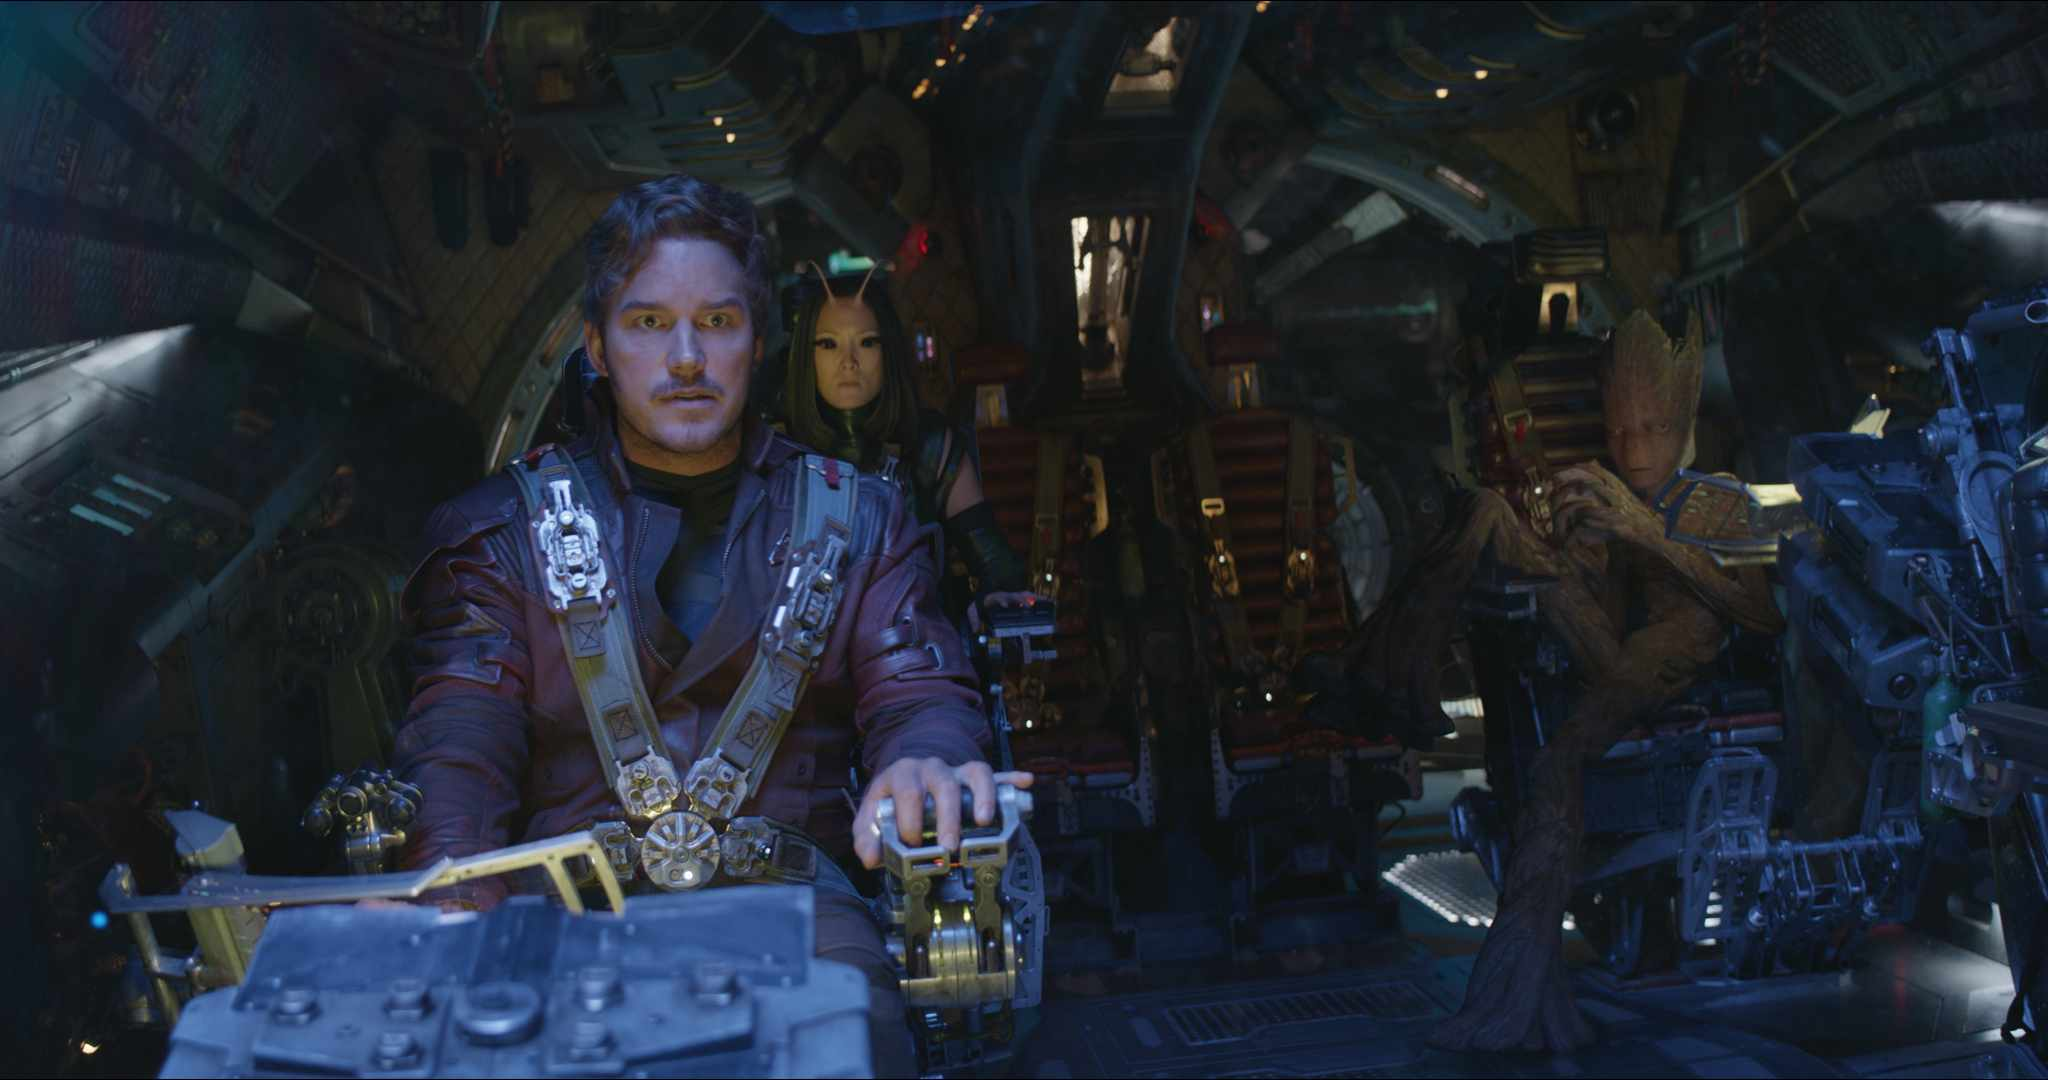 L to R: Star-Lord/Peter Quill (Chris Pratt), Mantis (Pom Klementieff), Groot (voiced by Vin Diesel)  DIsney, Marvel, sky pics, TL